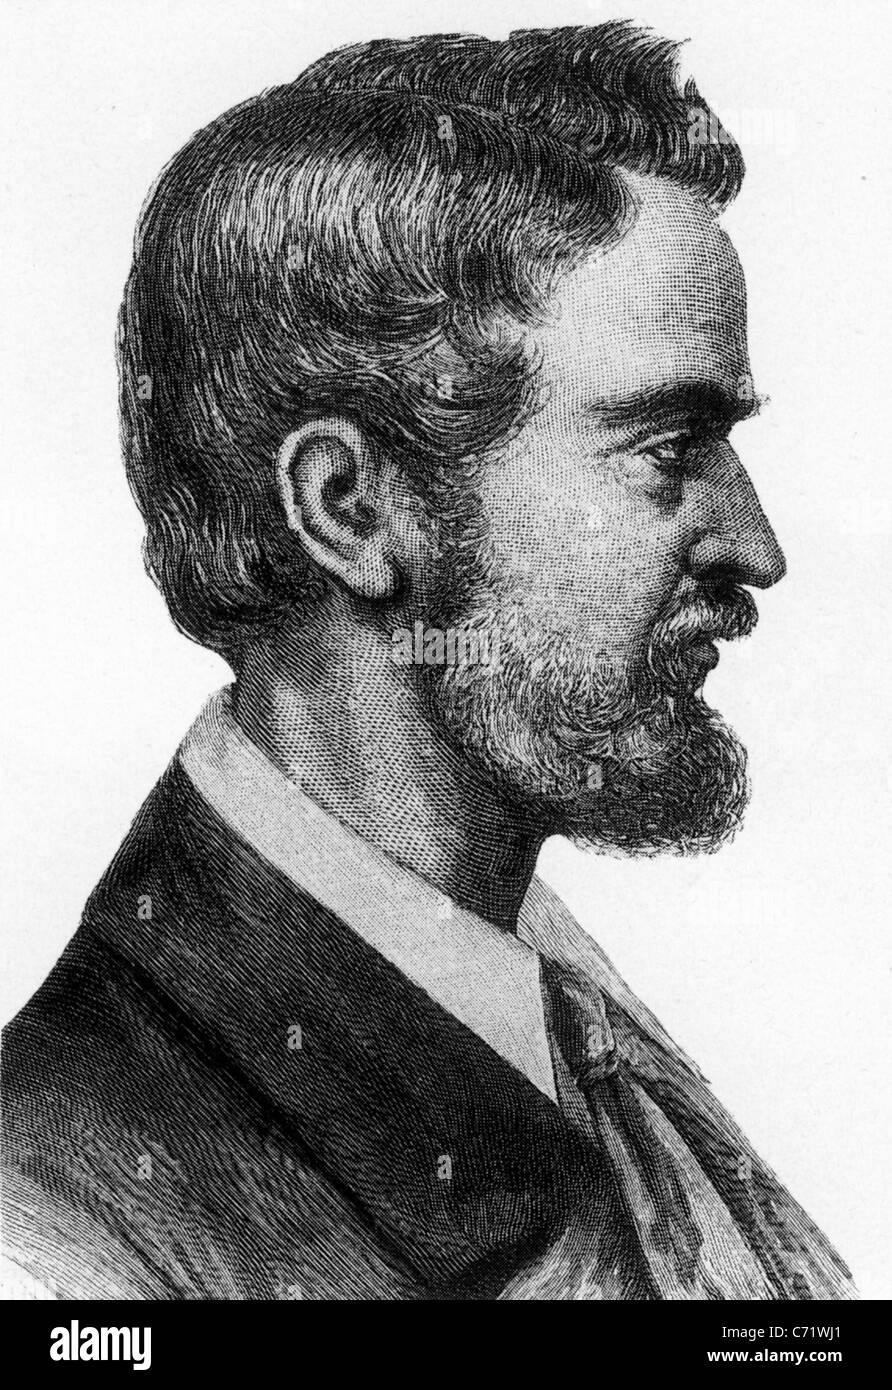 LUDWIG LEICHHARDT (1813- c1848) Prussian explorer and naturalist - Stock Image